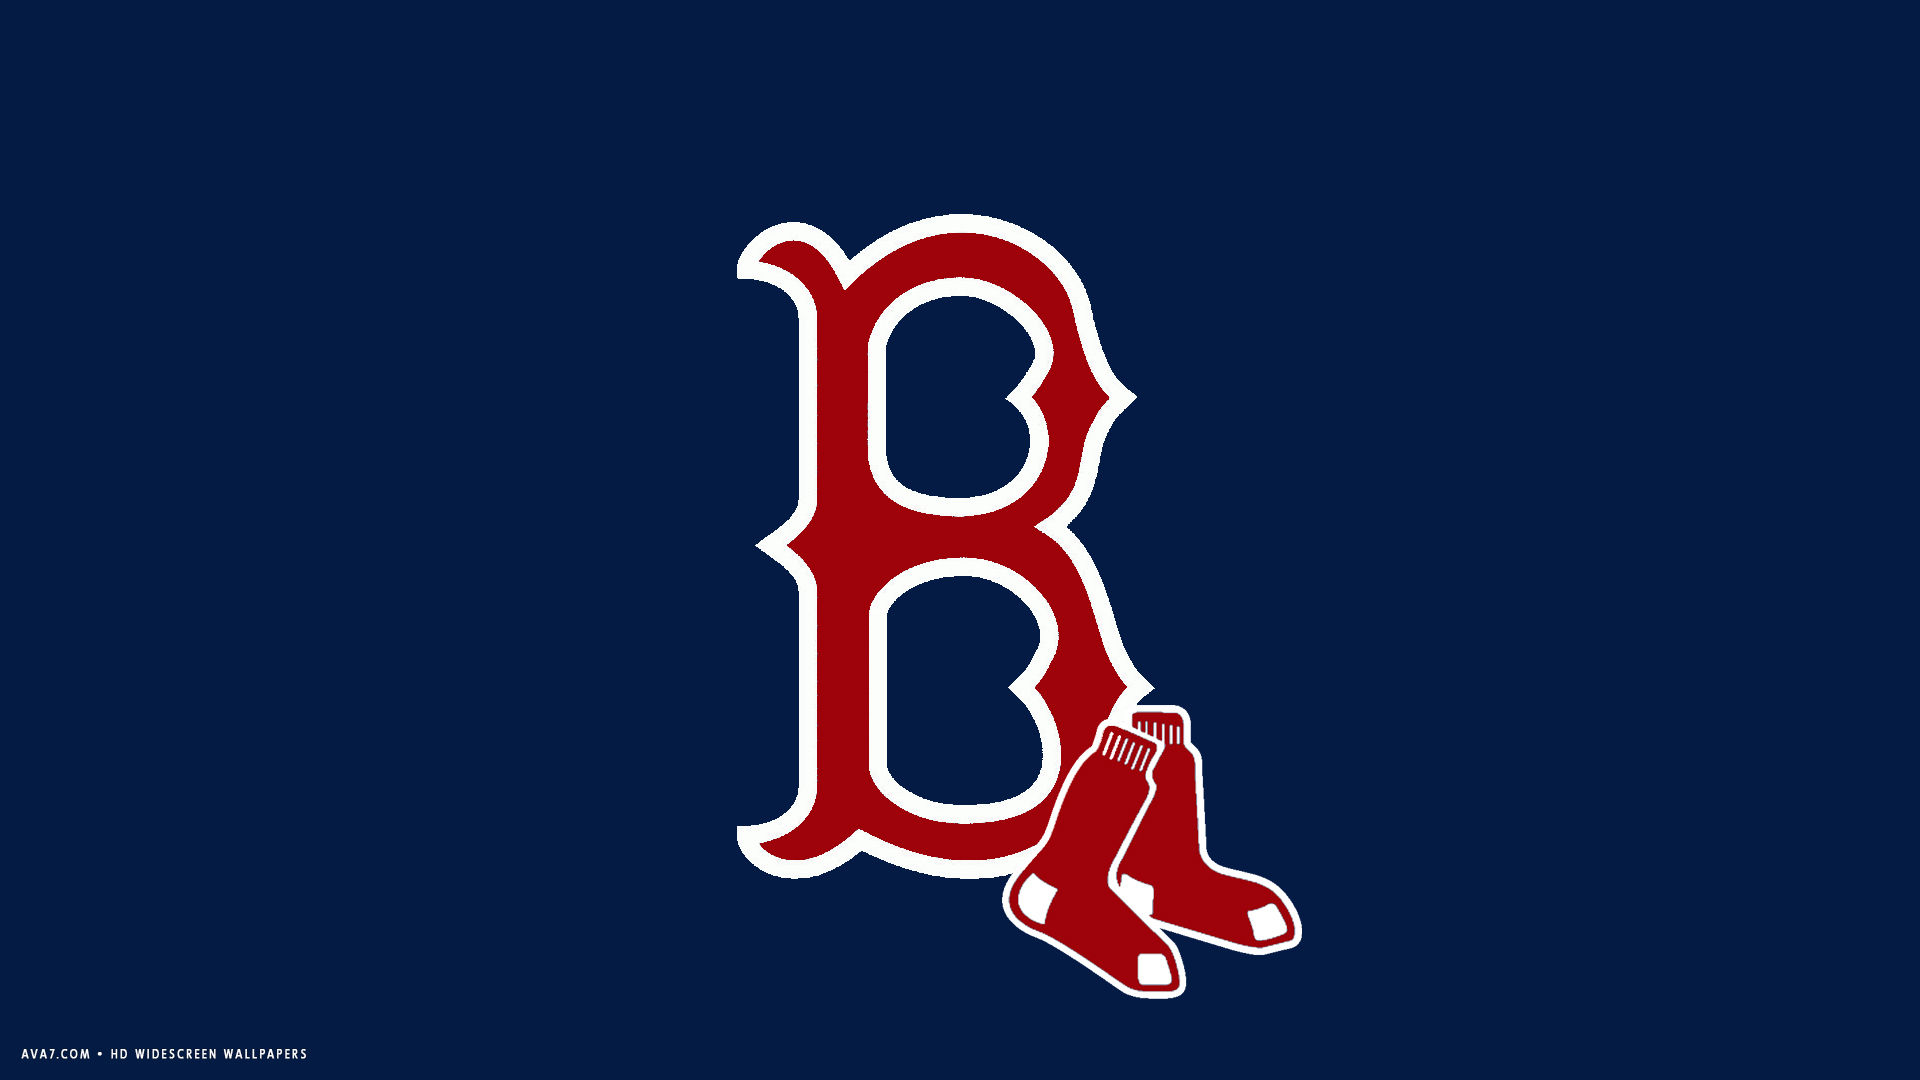 boston red sox mlb baseball team hd widescreen wallpaper 1920x1080